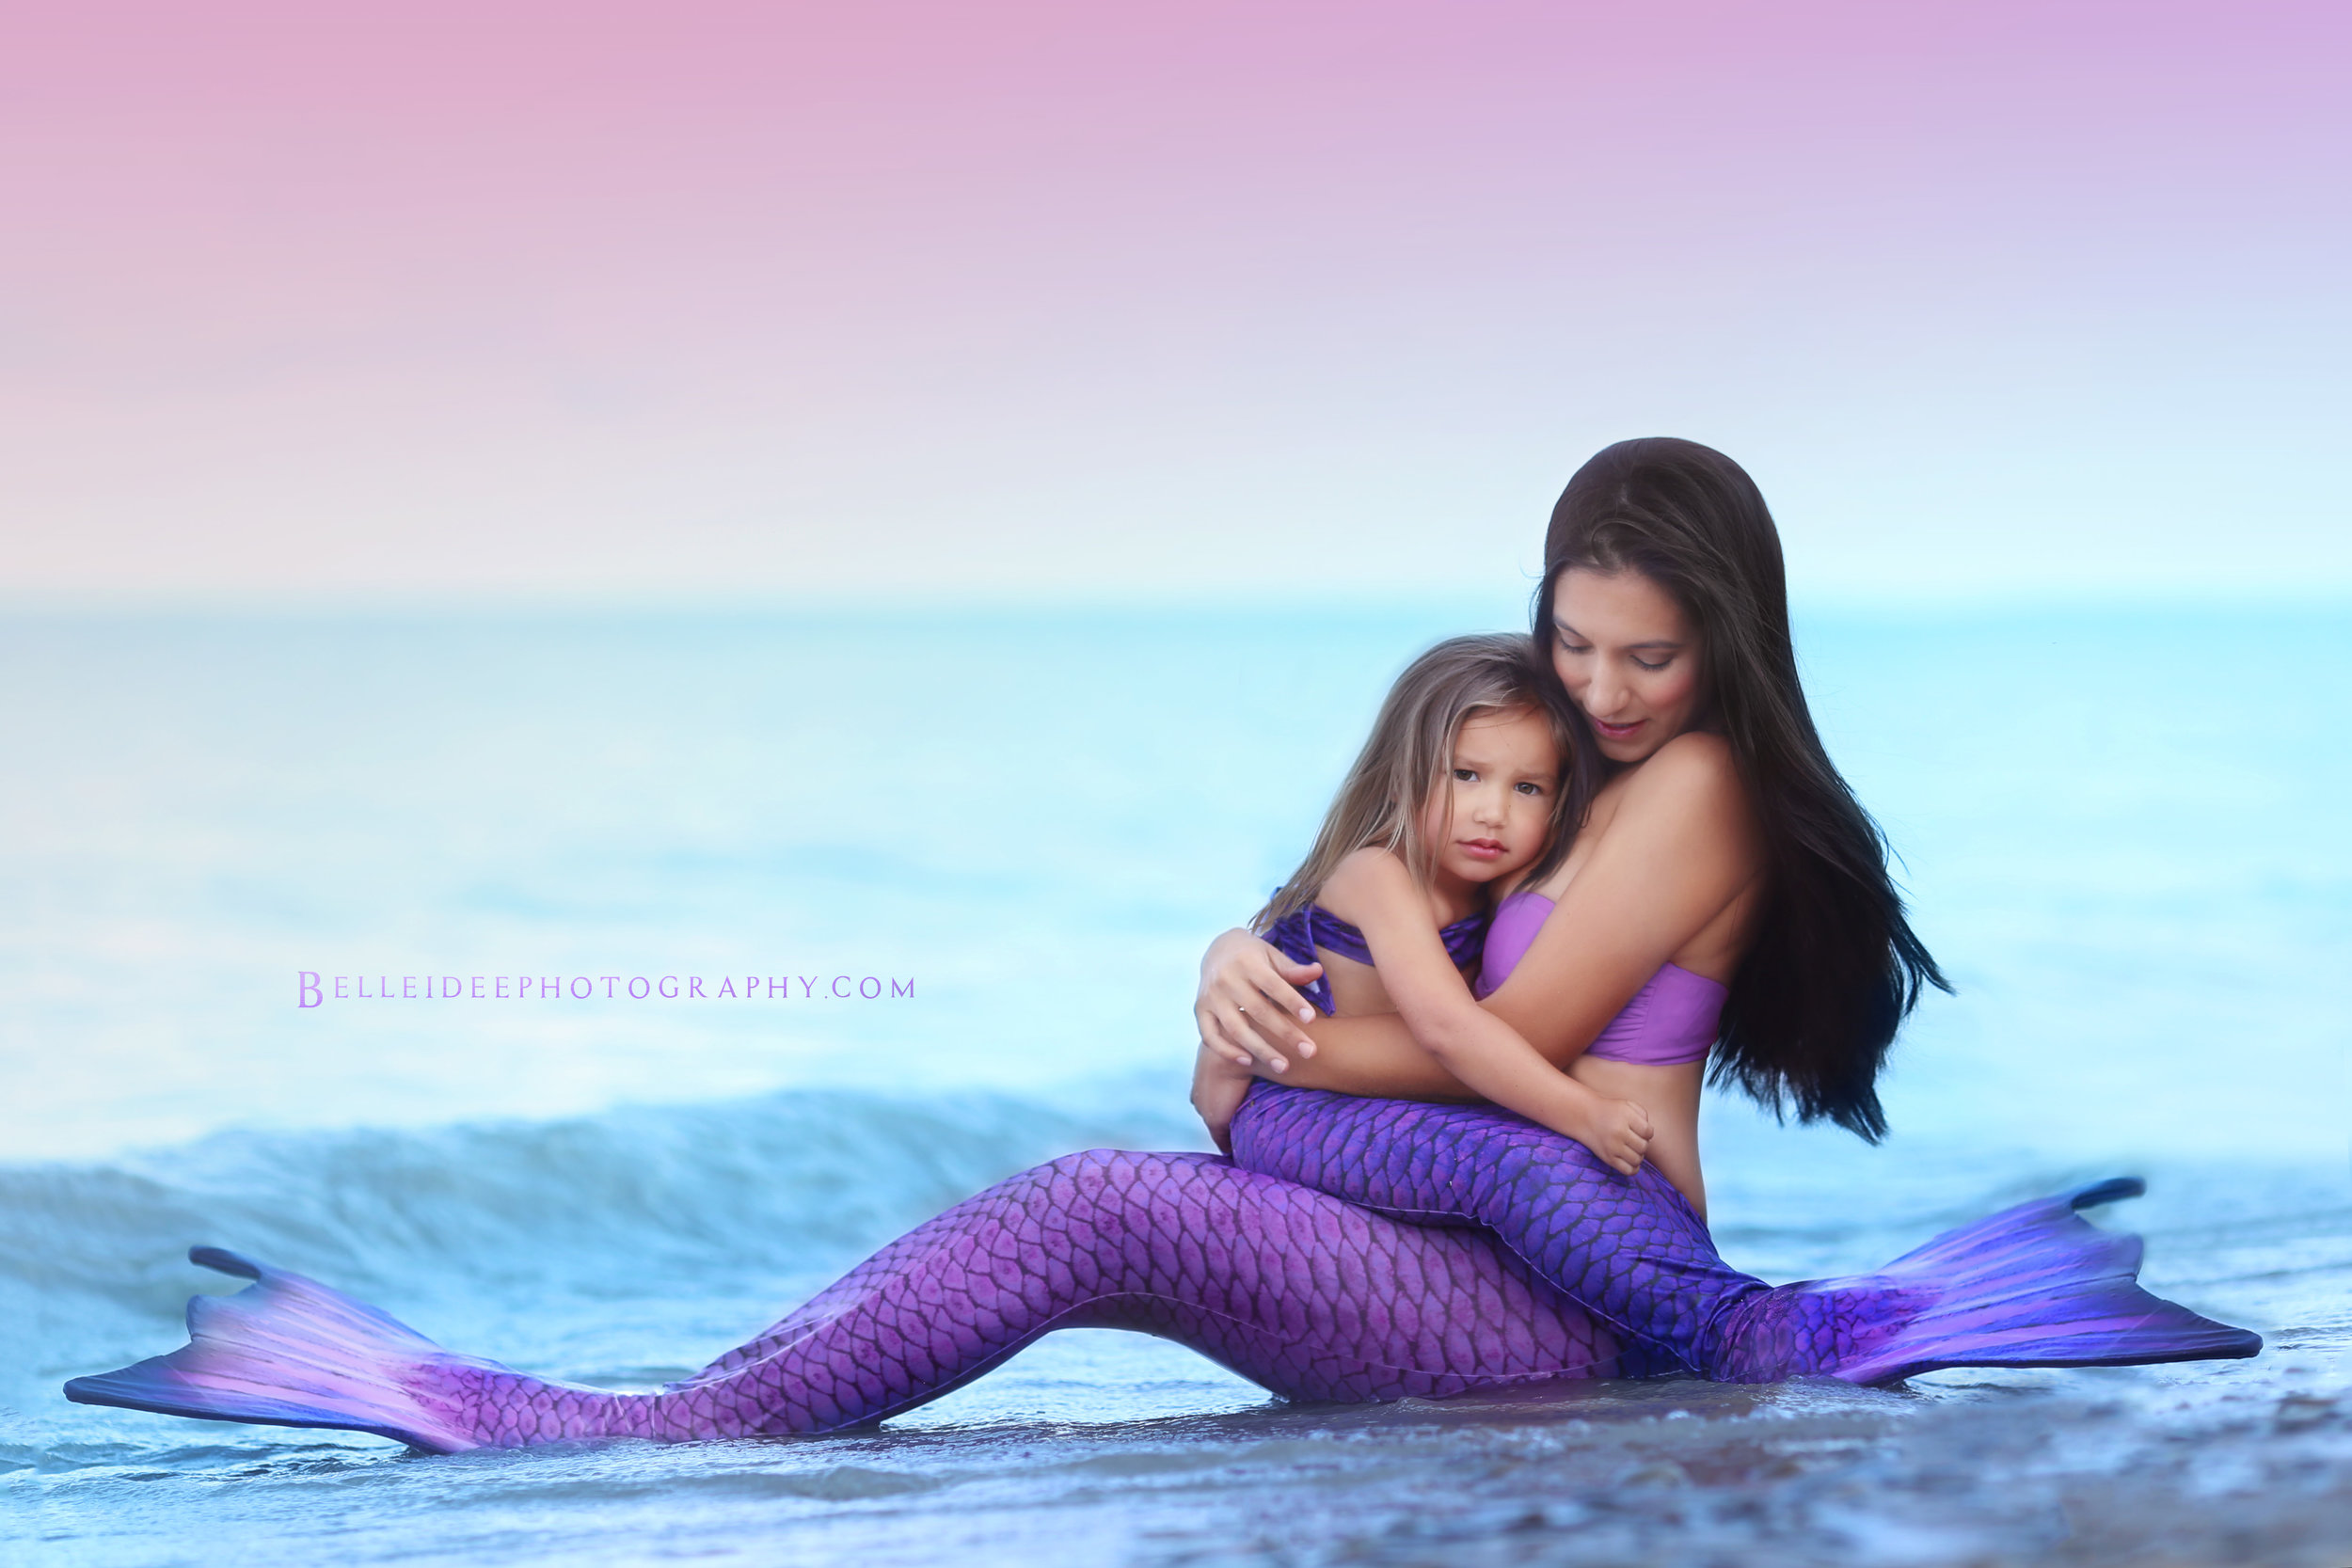 Mother and daughter mermaid sessions in buffalo, ny